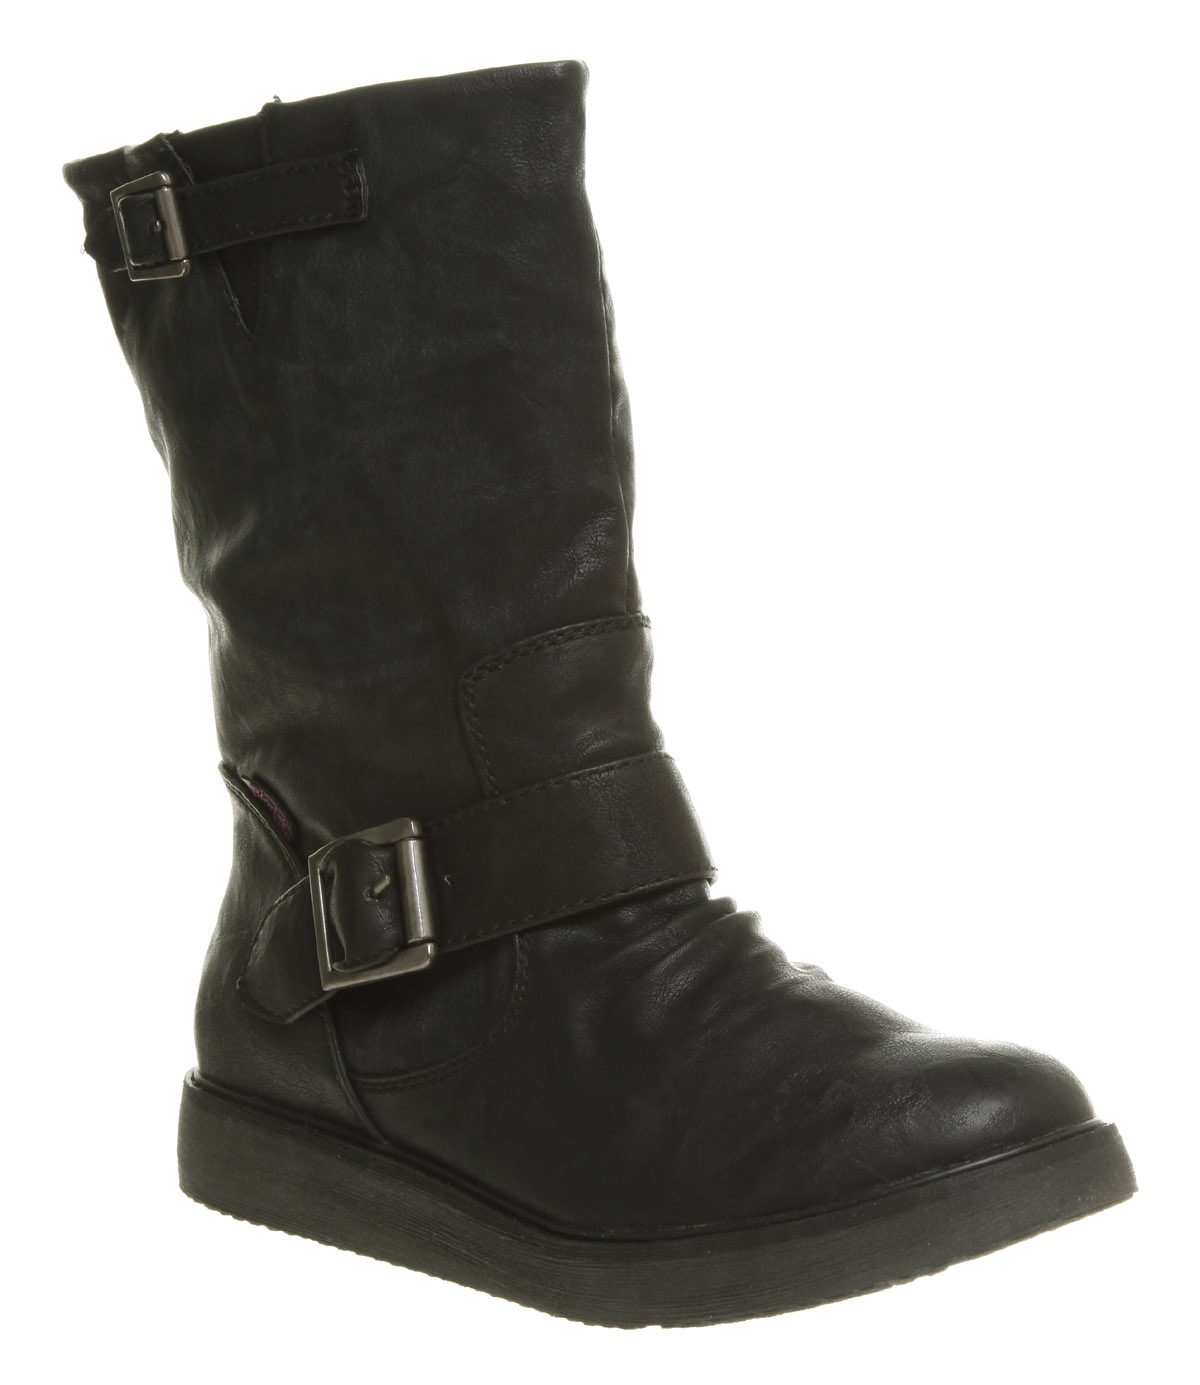 Shop Boots & Booties for Women in the latest styles at American Eagle. Choose from a variety of sizes and colors of booties, mid calf boots, knee high boots and rain boots.